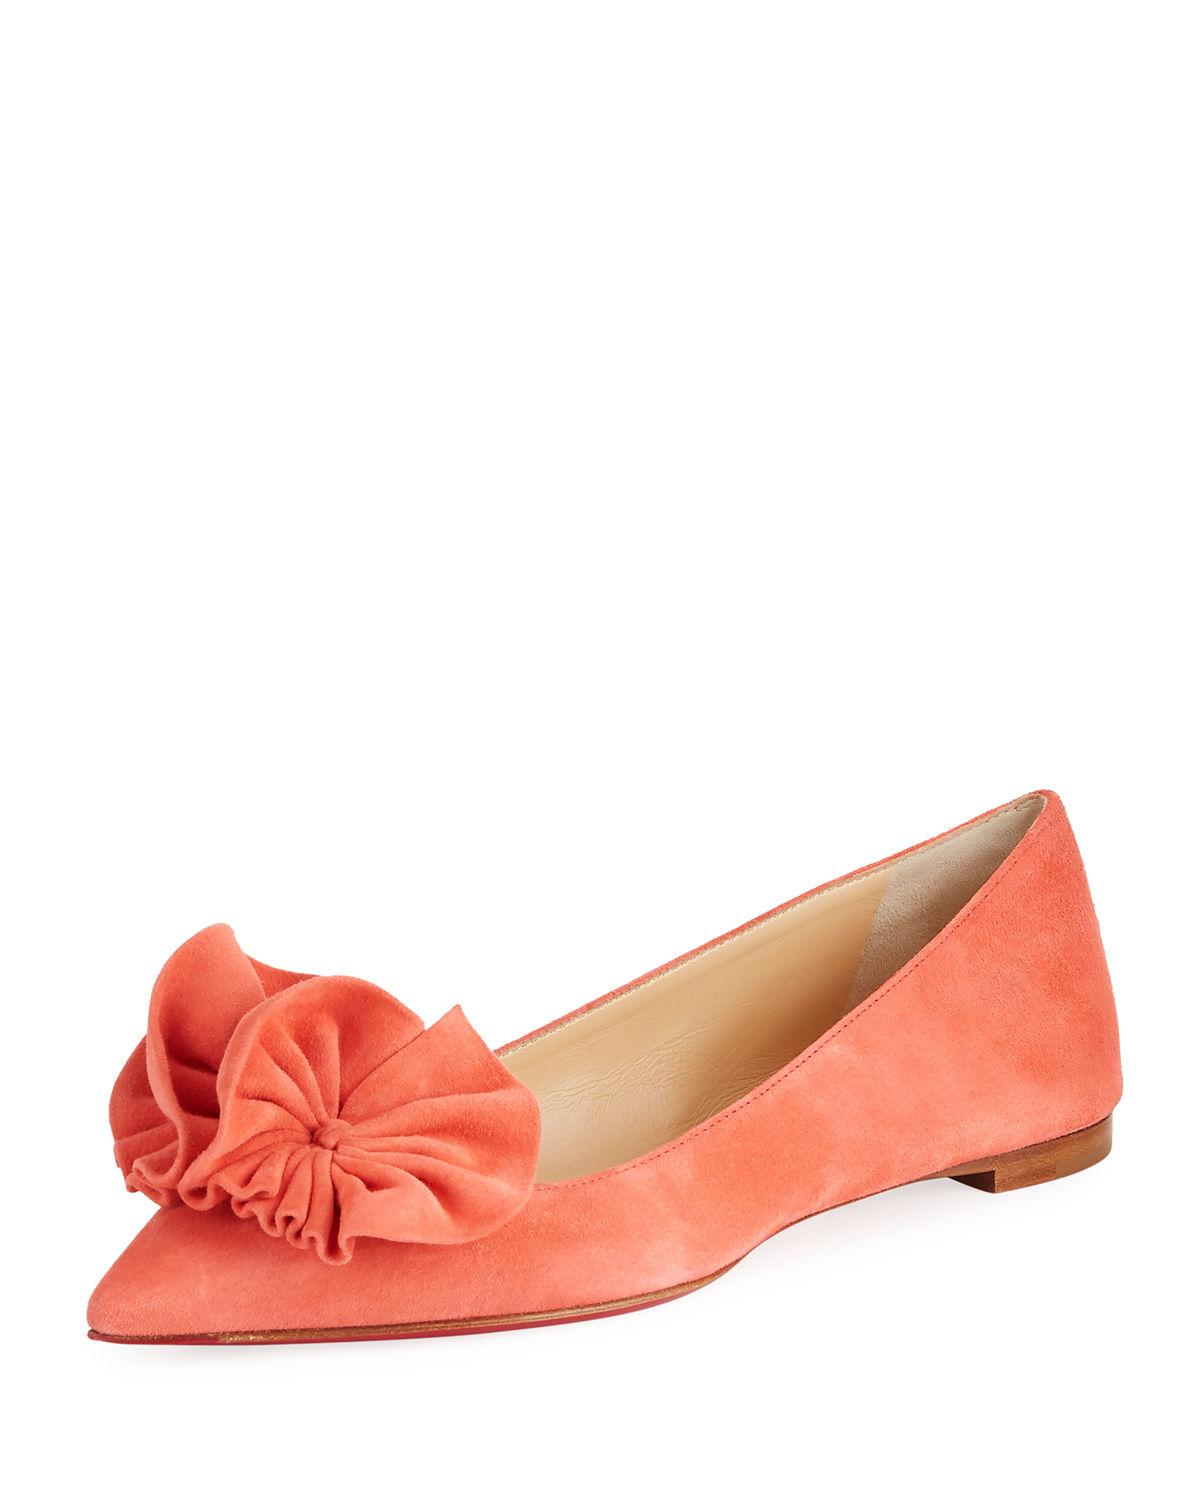 fd69b183497c Christian Louboutin calf suede ballerina flat with ruffled appliqu. Flat  stacked heel. Pointed toe. Slip-on style. Leather lining. Signature red  leather ...